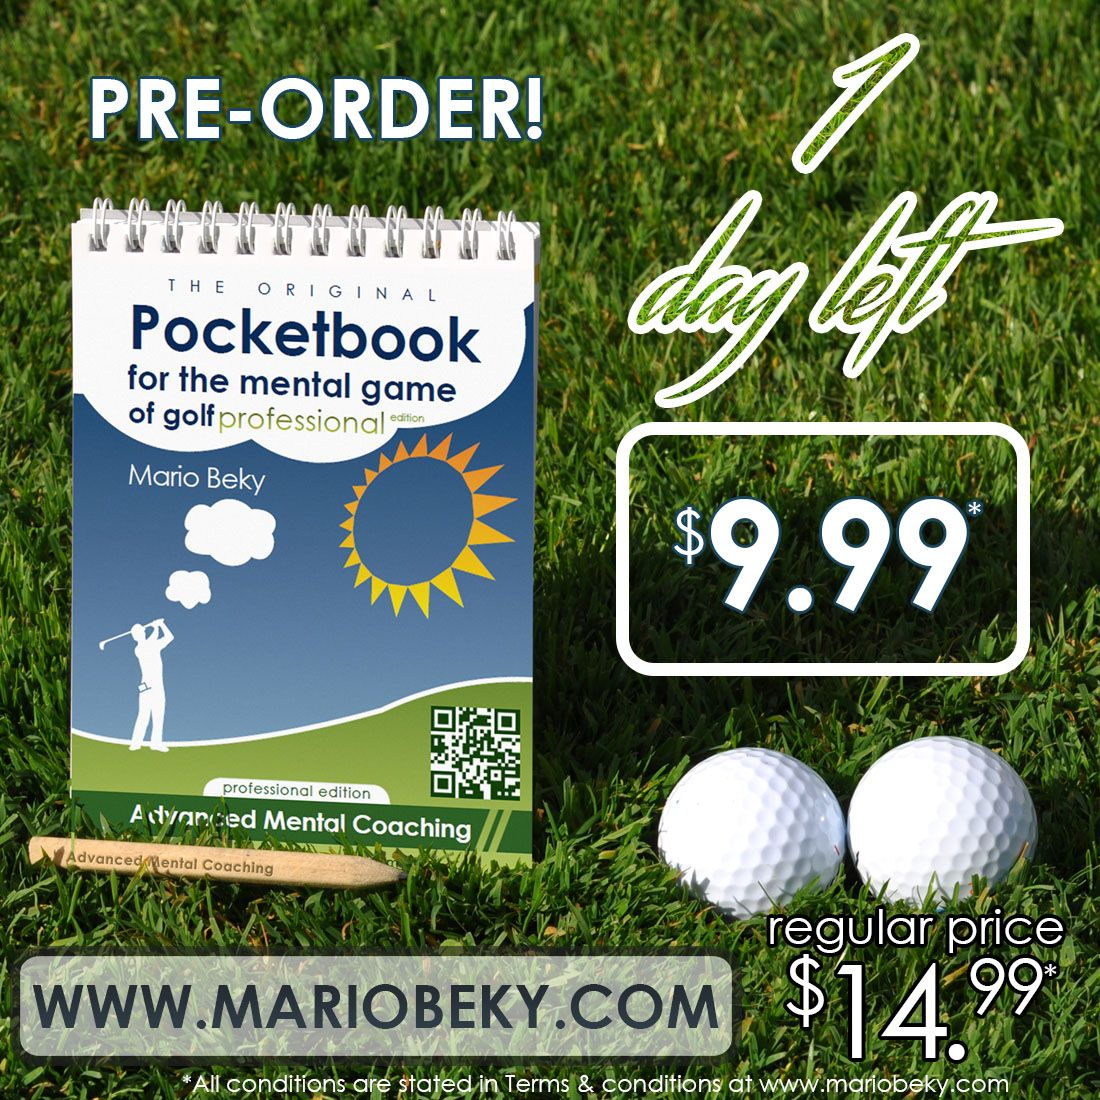 If you love golf, you know that a mental advantage in the